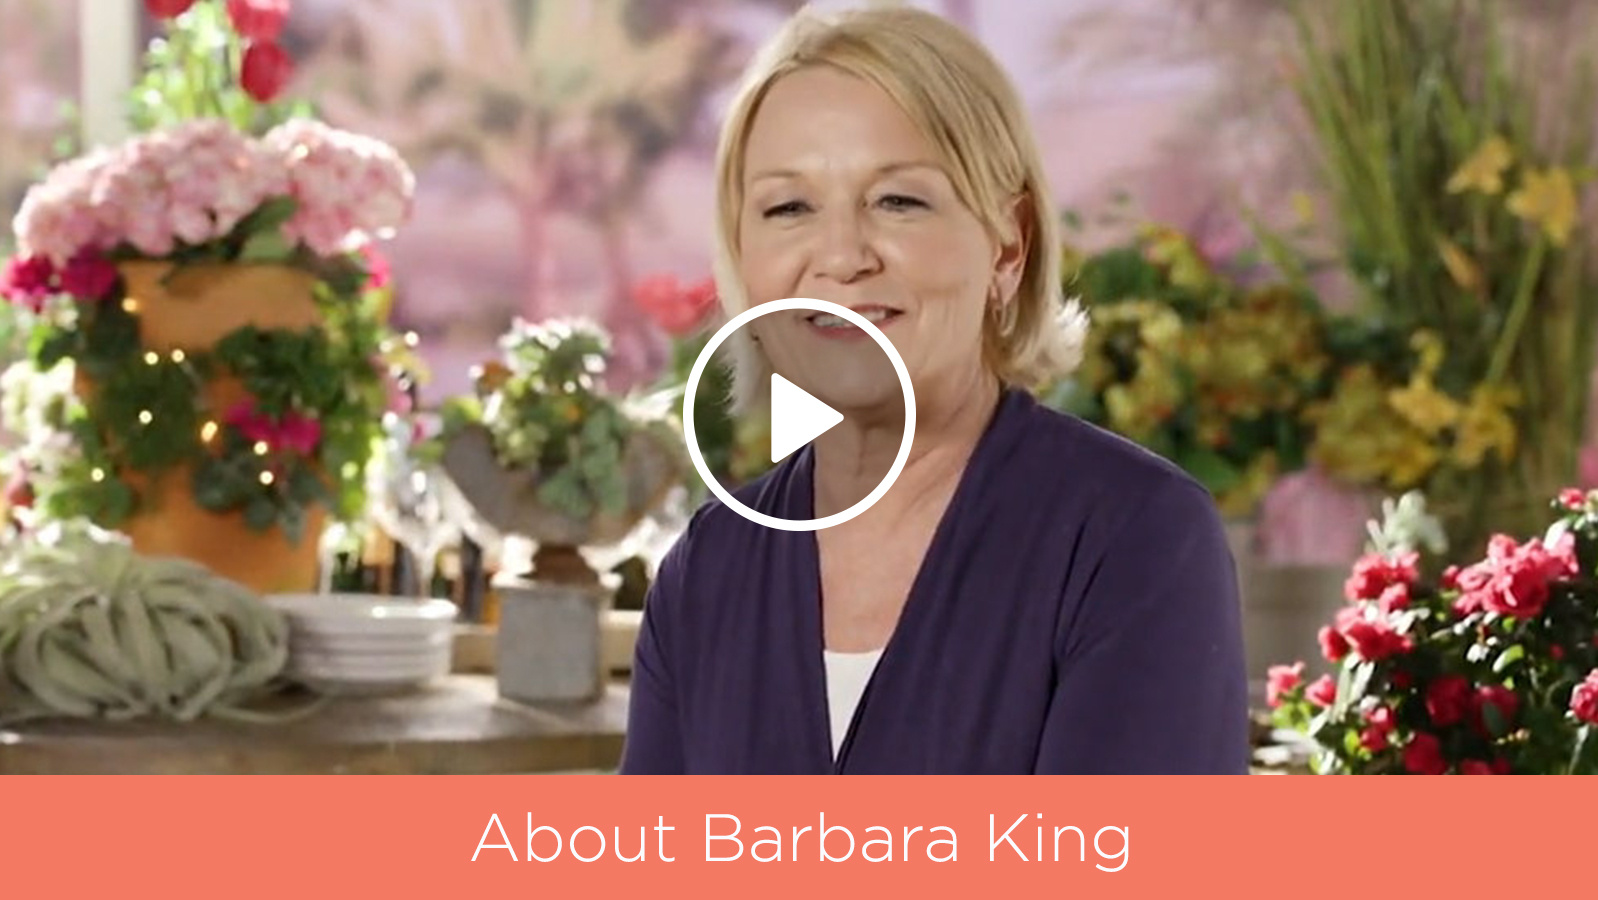 About Barbara King